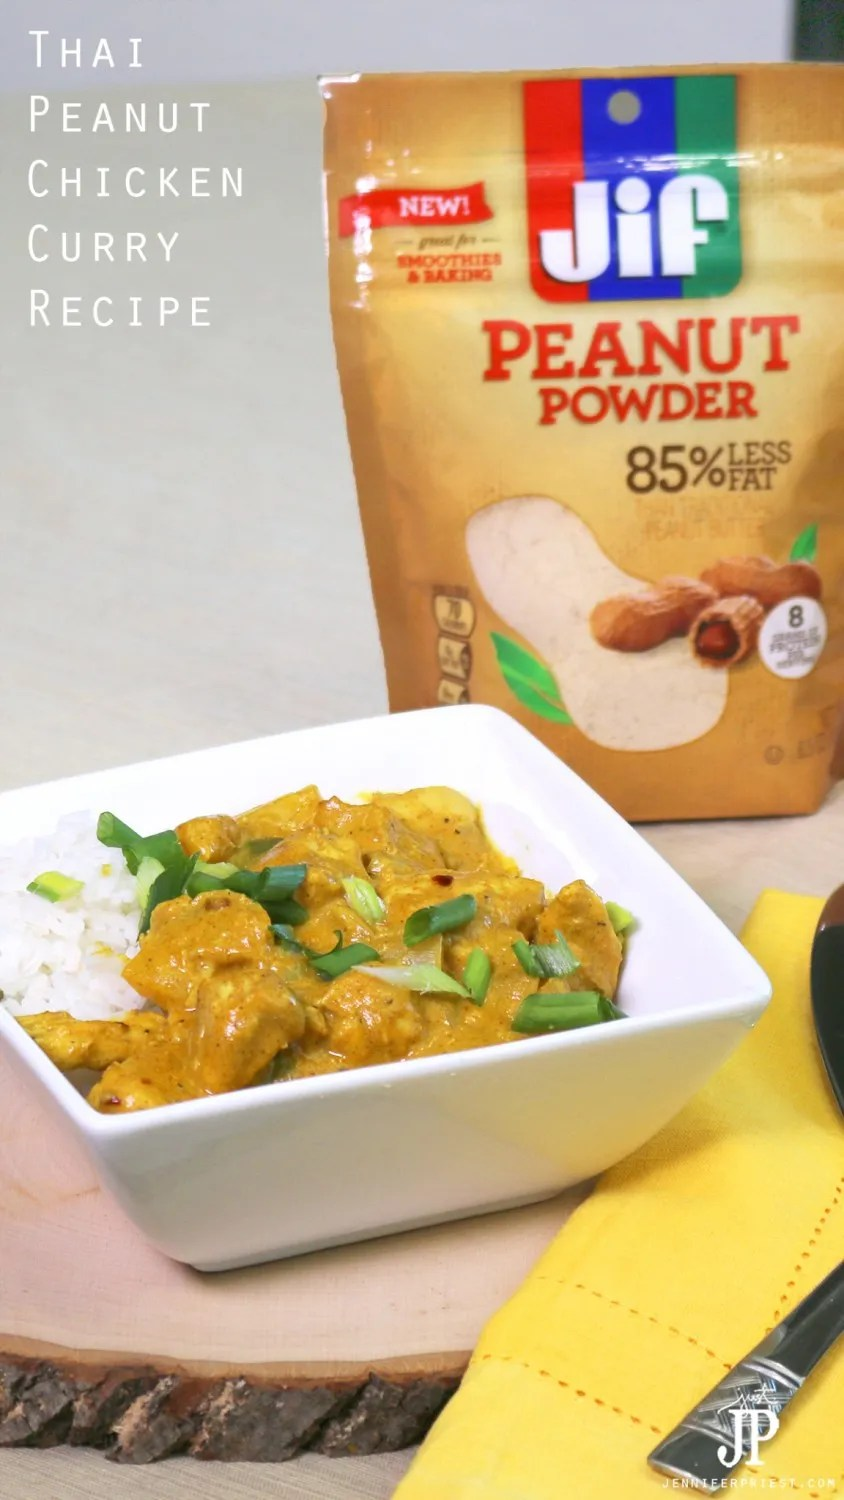 Make this Thai Peanut Chicken Curry for dinner tonight with Jif Peanut Powder! This recipe will make you forget about takeout.